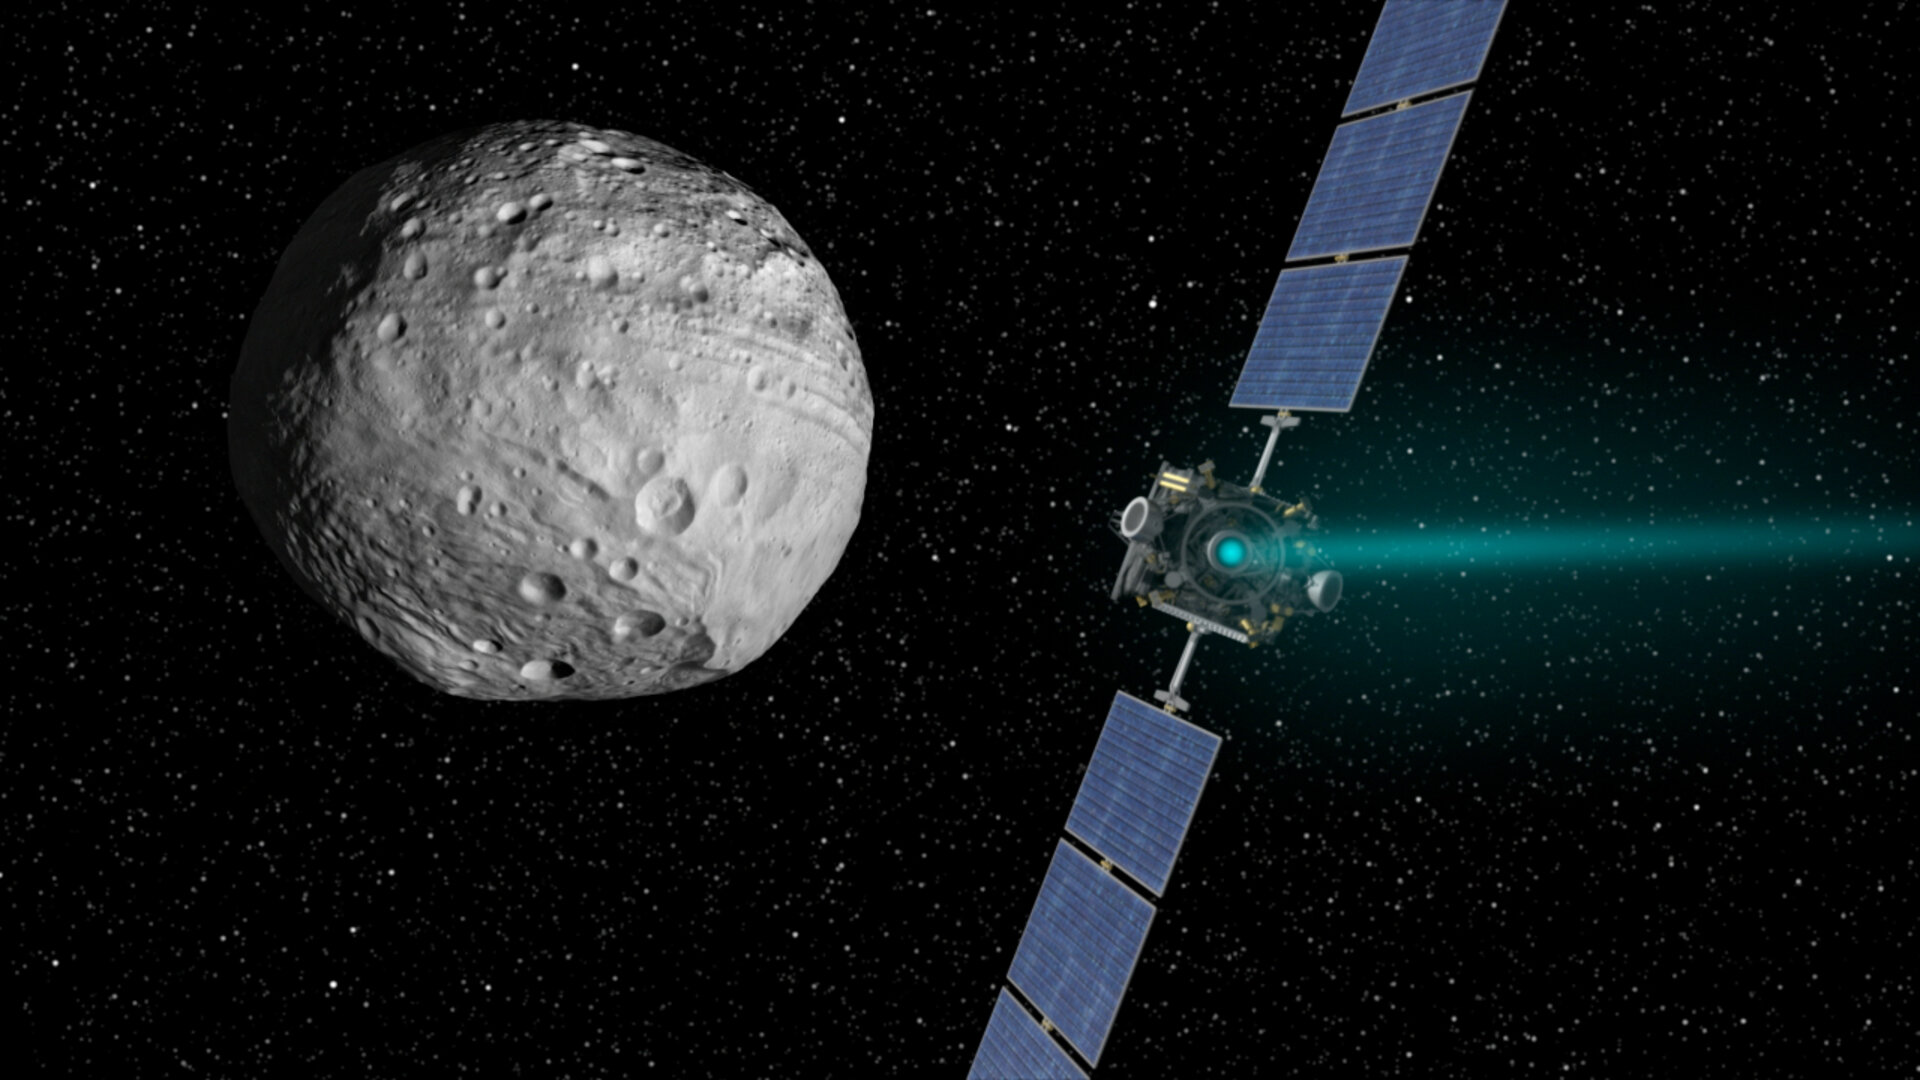 Dawn spacecraft at Vesta